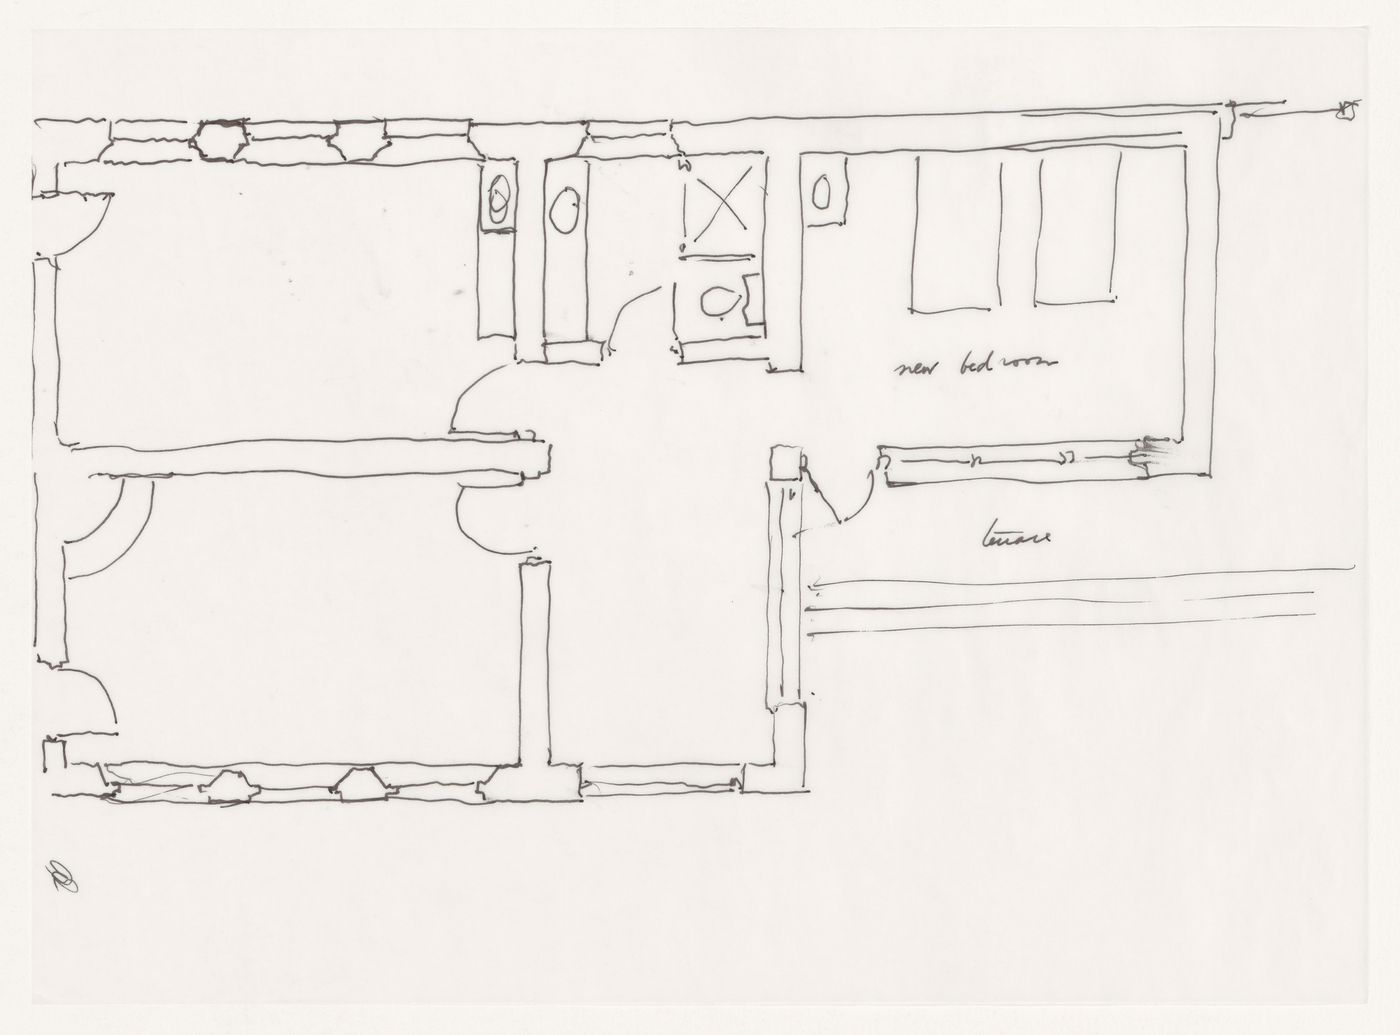 Sketch plan for Shirley MacLaine House, De Baca County, New Mexico